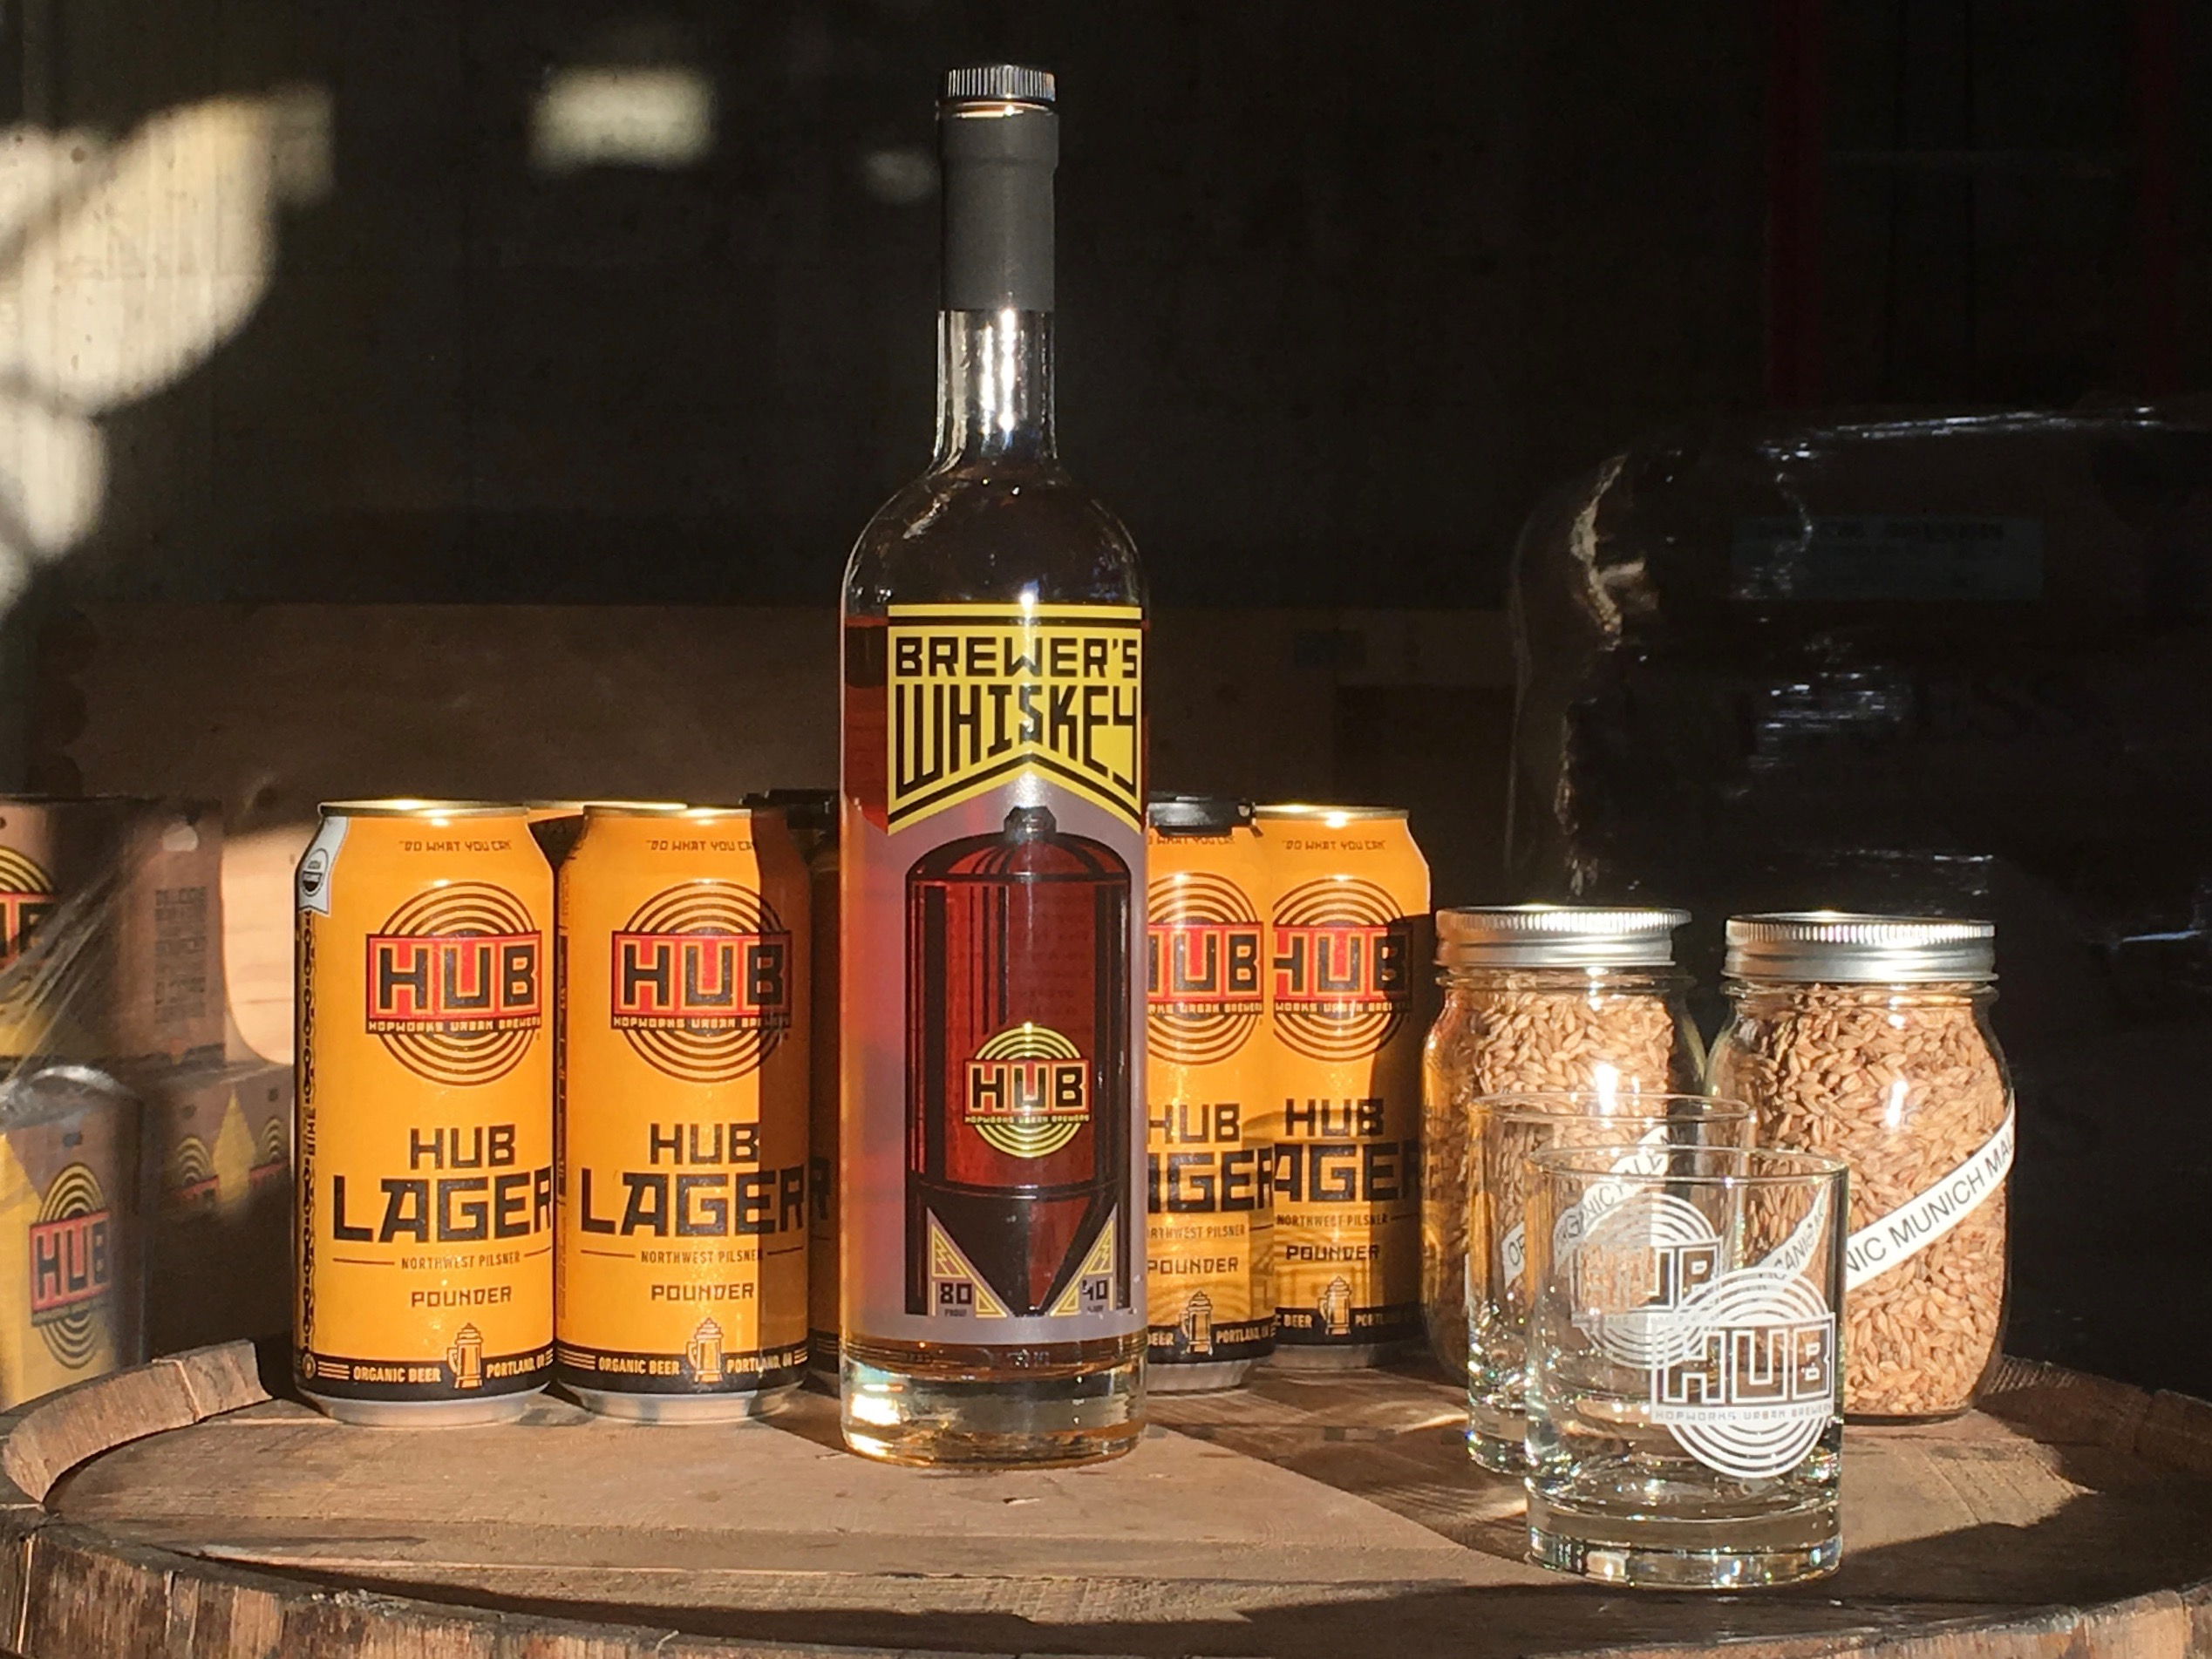 Hopworks Urban Brewery has partnered with New Deal Distillery on HUB Brewer's Whiskey available exclusively at Hopworks.